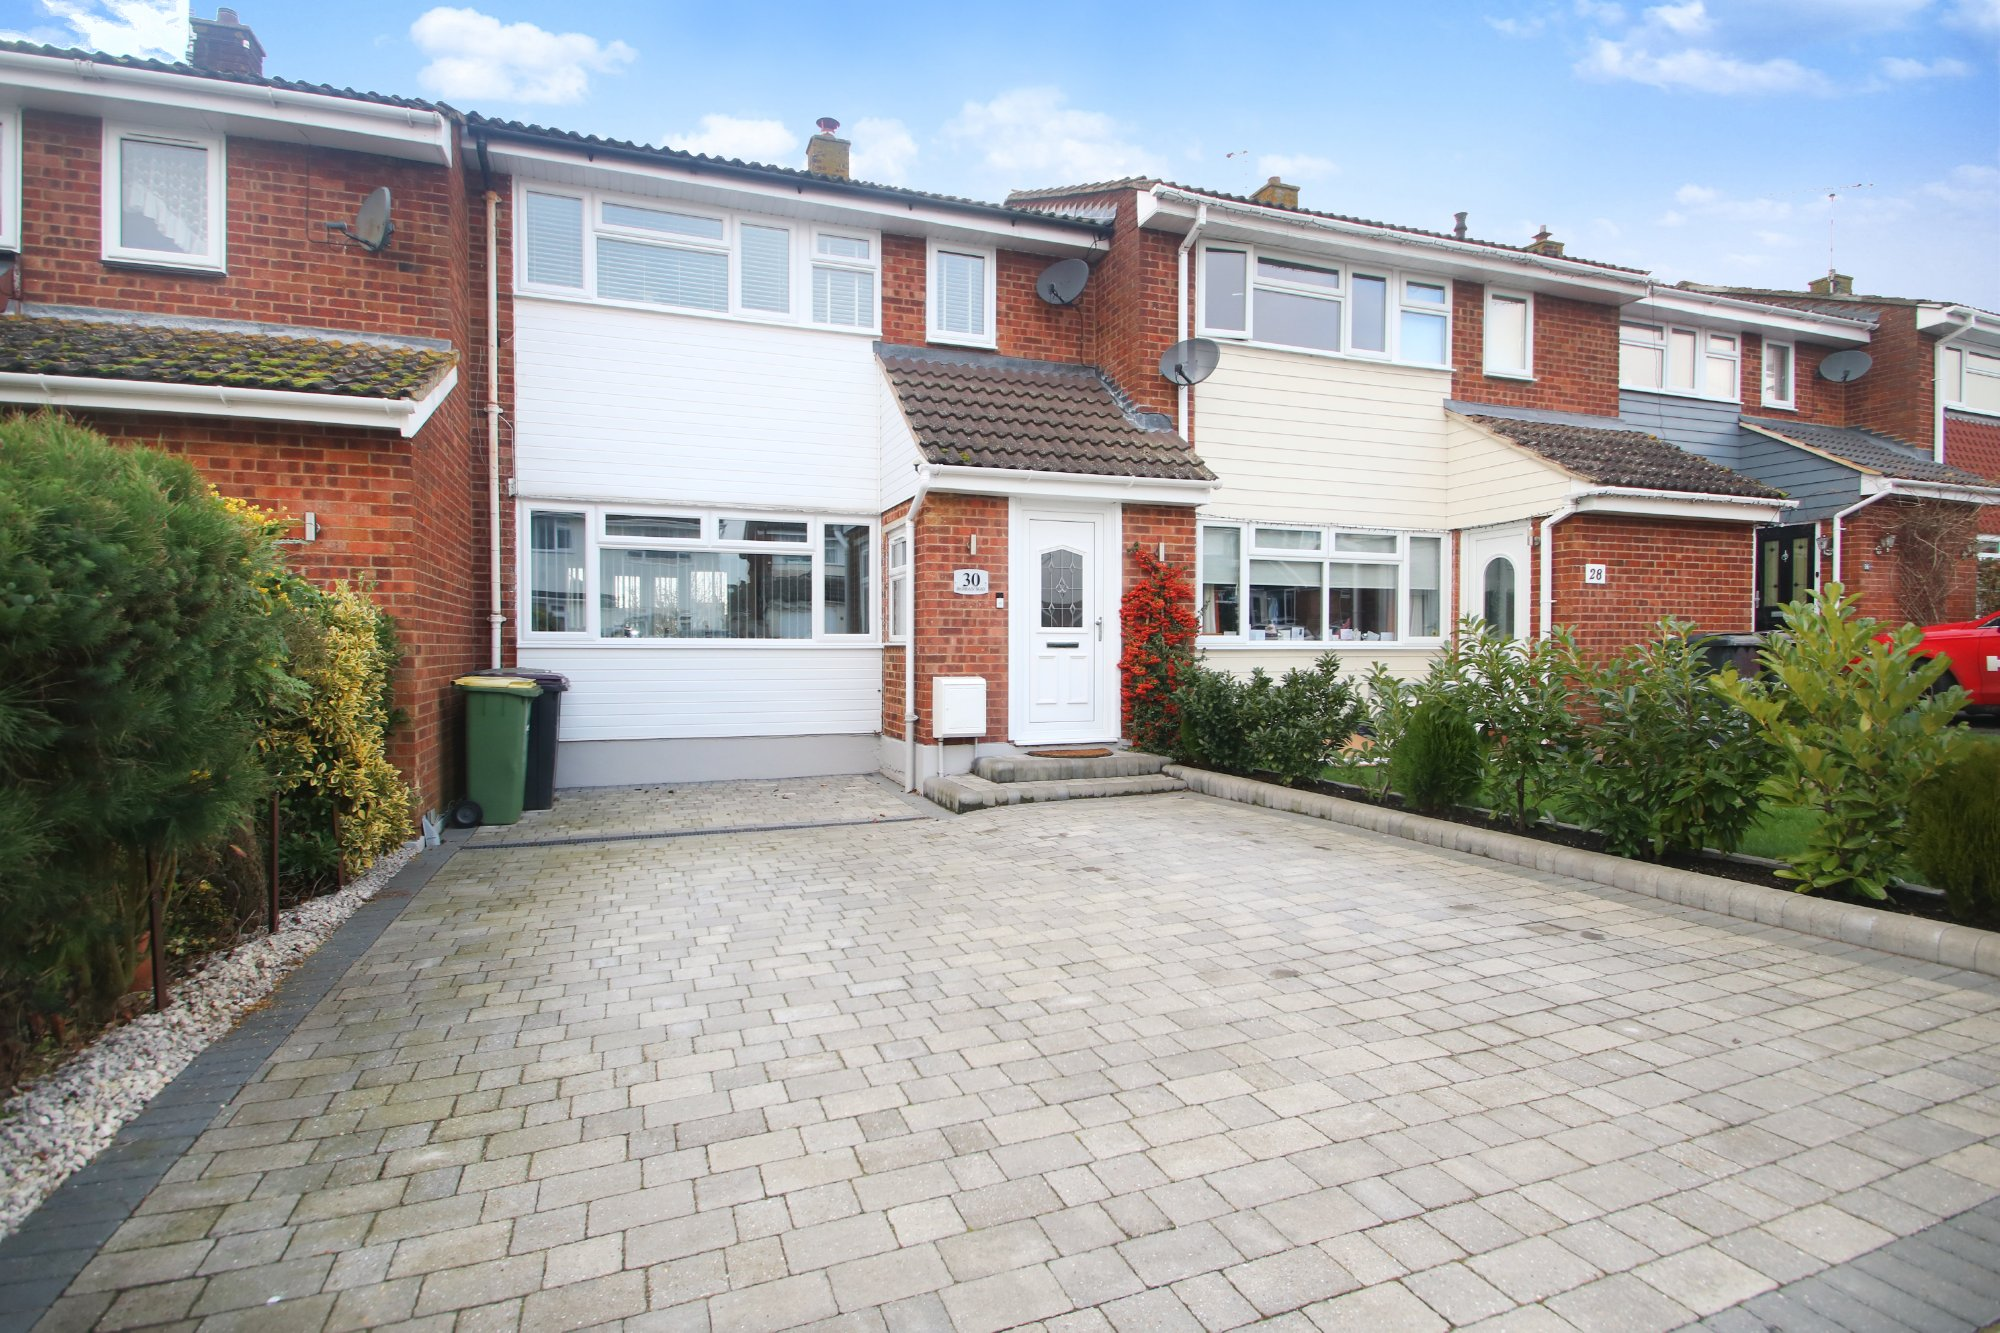 Rowan Way, Canewdon, Rochford